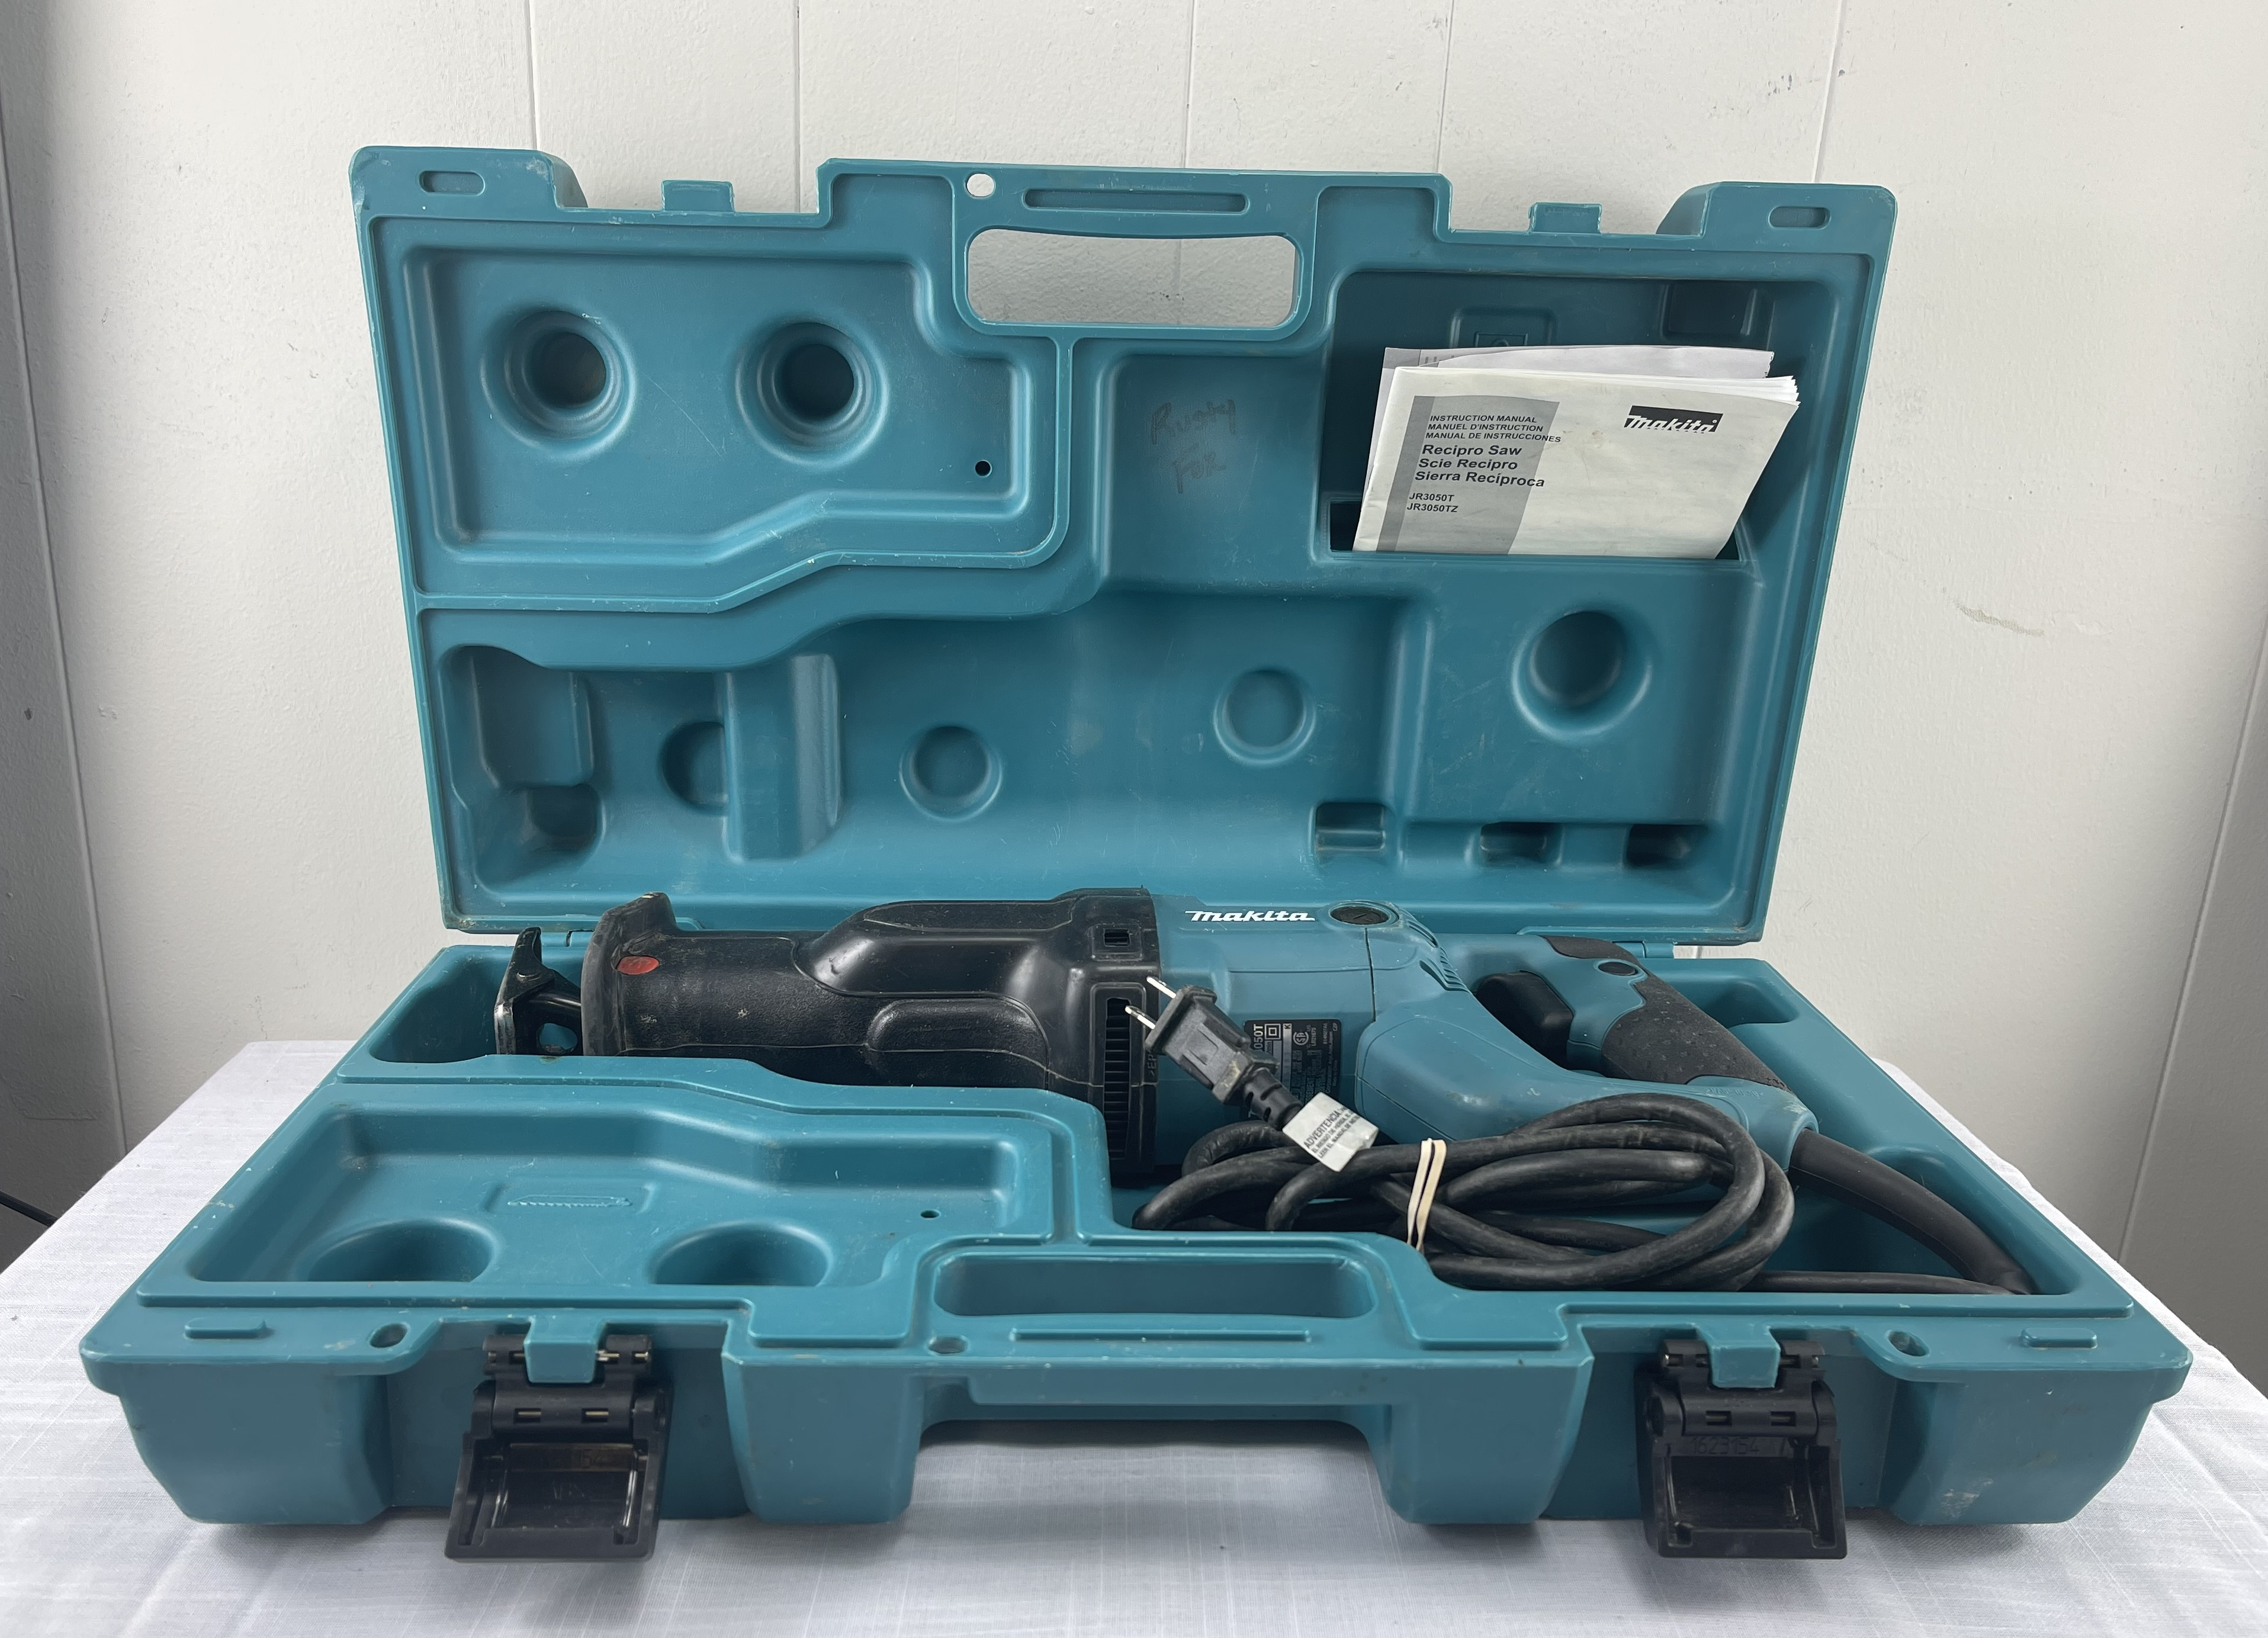 Makita JR3050T Corded Variable Speed Reciprocating Saw w/Case and Manual